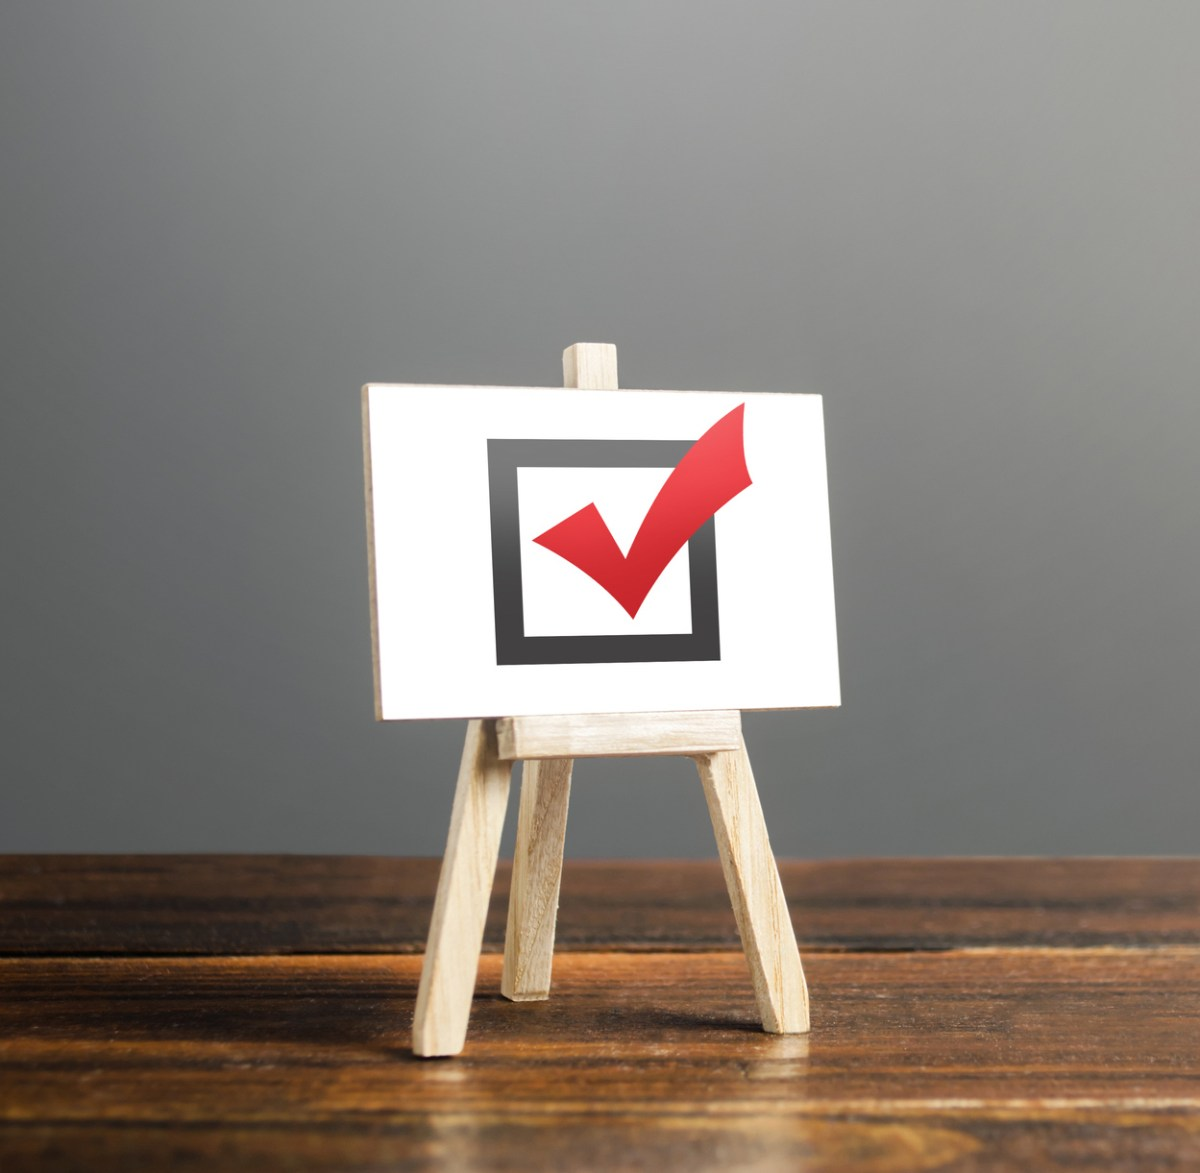 Facing a dozen ballot measures on their November ballot, voters will be asked to decide the fate of hot issues from taxes to rent control, bail to privacy, and more. Photo via iStock